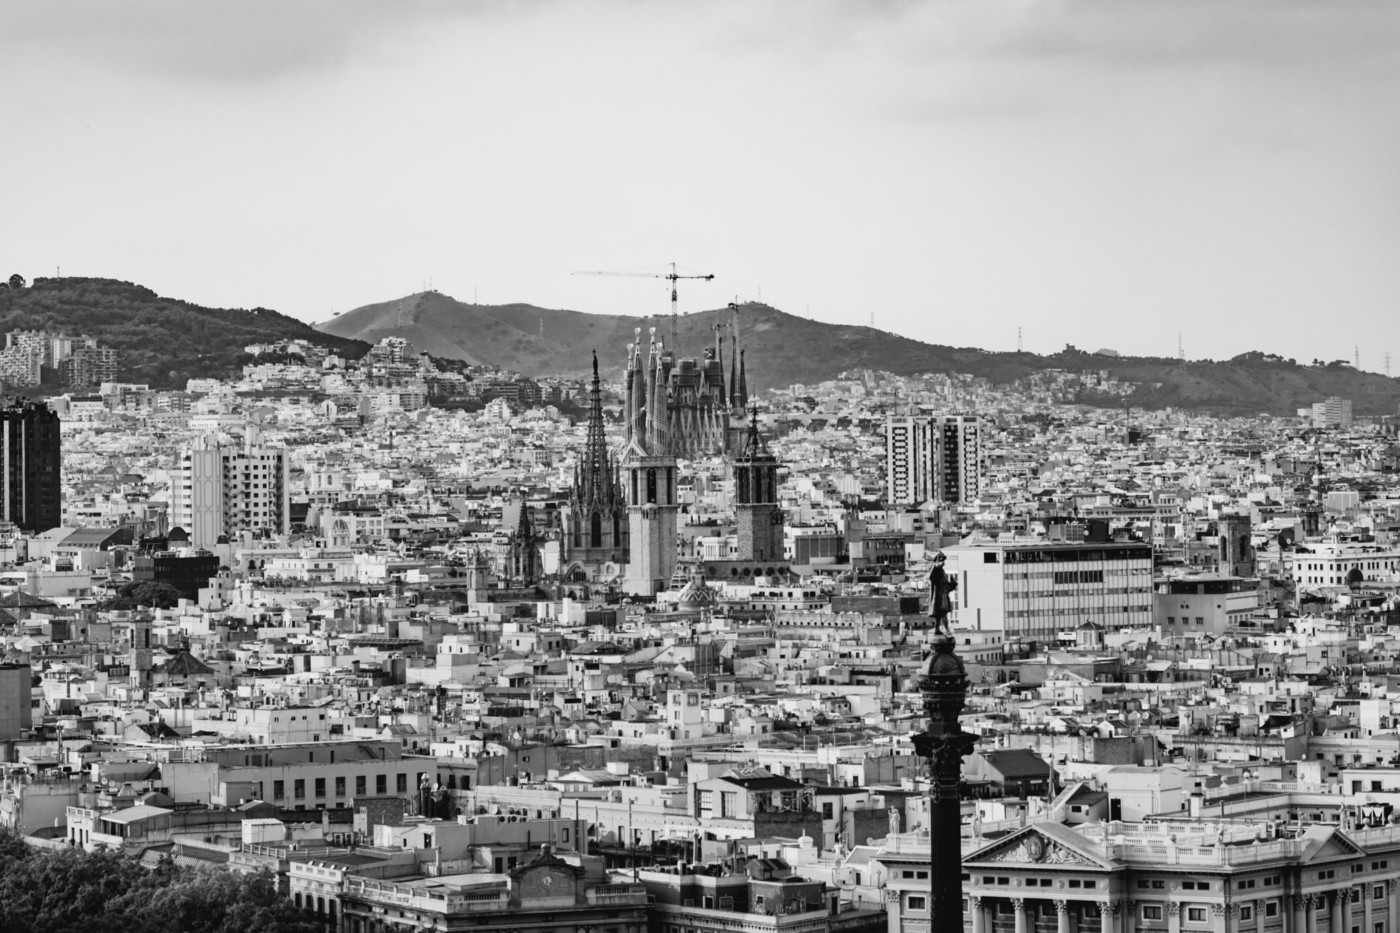 Barcelona, with the Sagrada Familia visible in the middle of the frame. It's a building that will take a millennia to complete, with Anotnio Gaudi always aware he would not be alive to see it at completion.